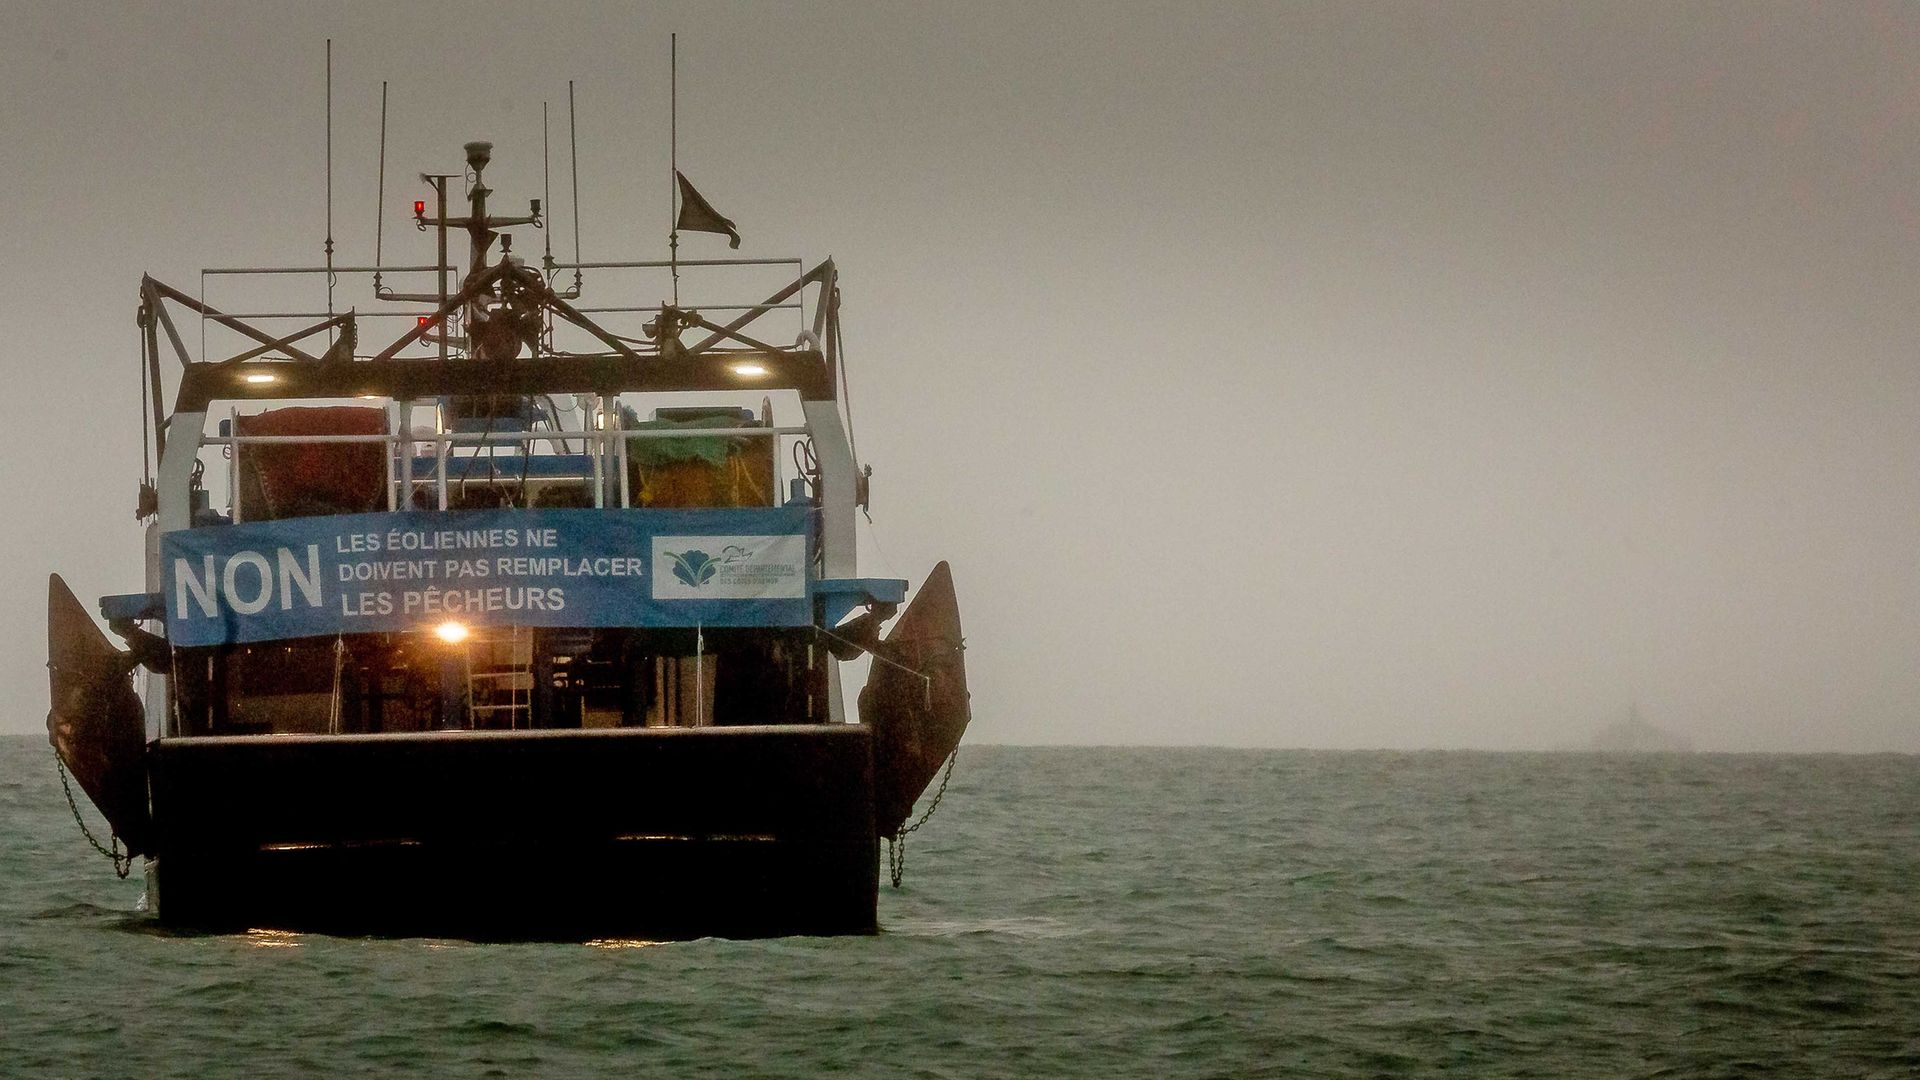 A French fishing boat with a protest sign opposing new fishing licenses in St Helier, Jersey - Credit: Getty Images